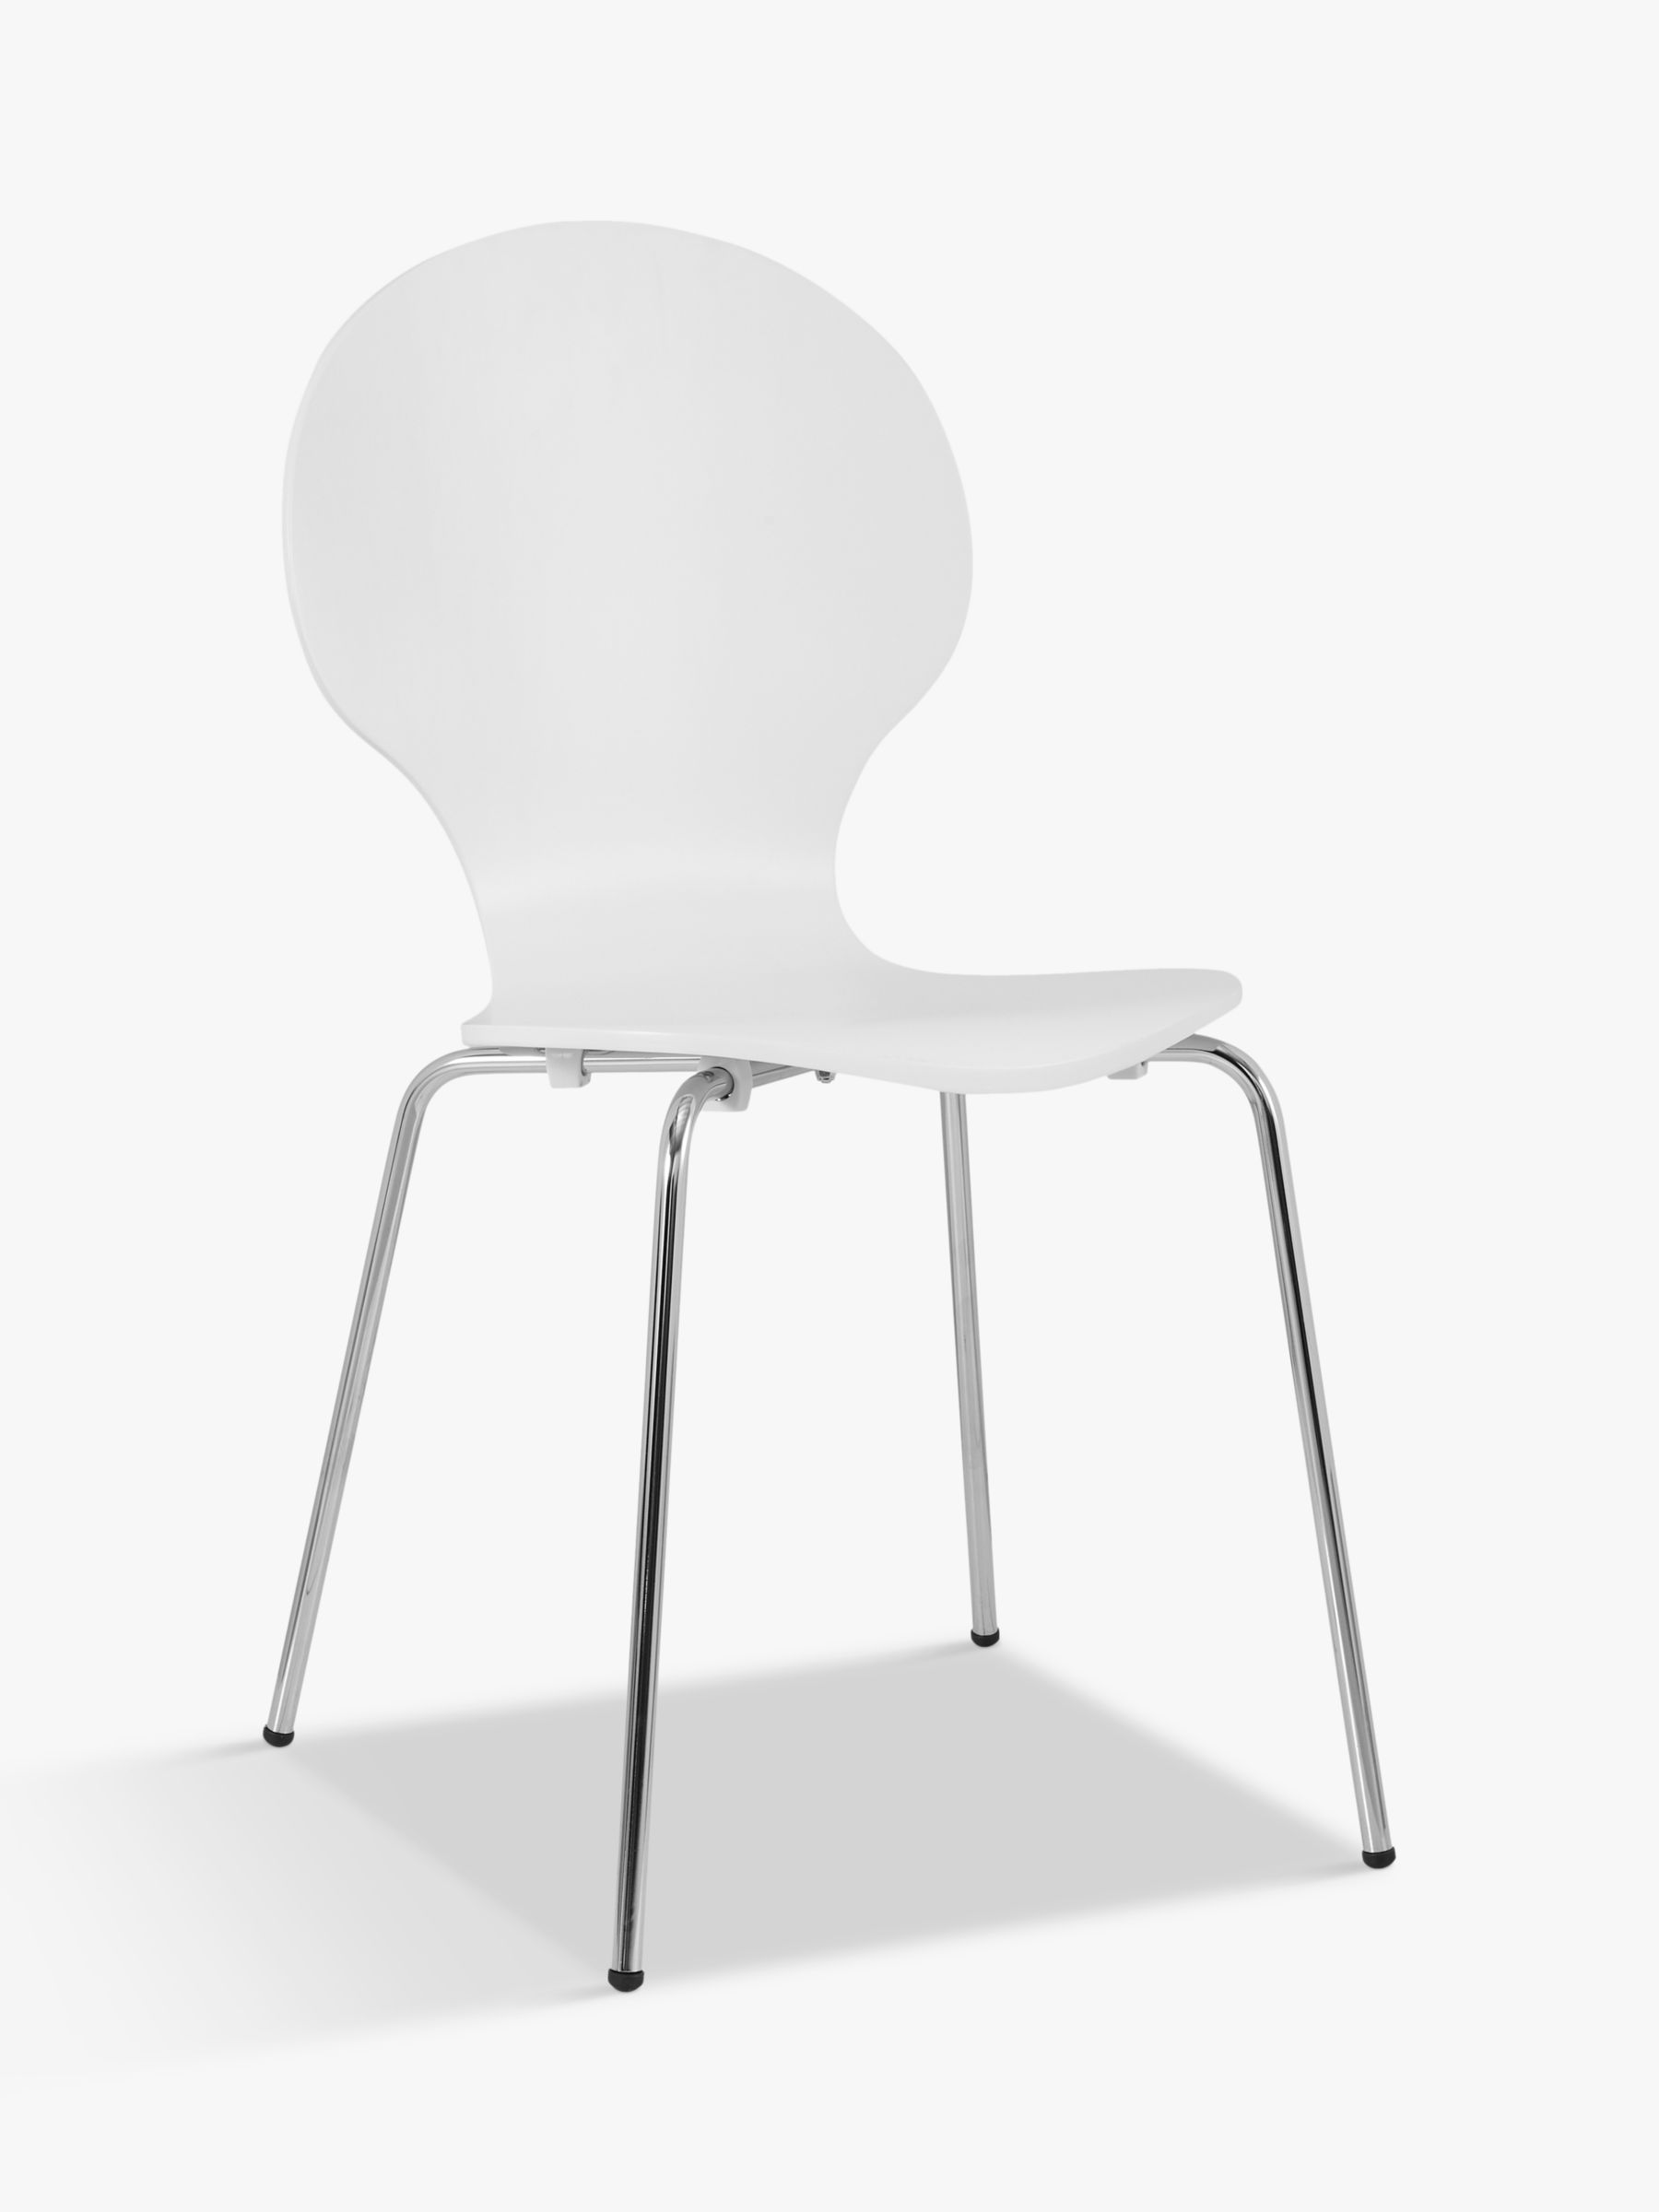 plastic chairs with stainless steel legs table chair set dining wooden leather fabric john lewis house by curve white